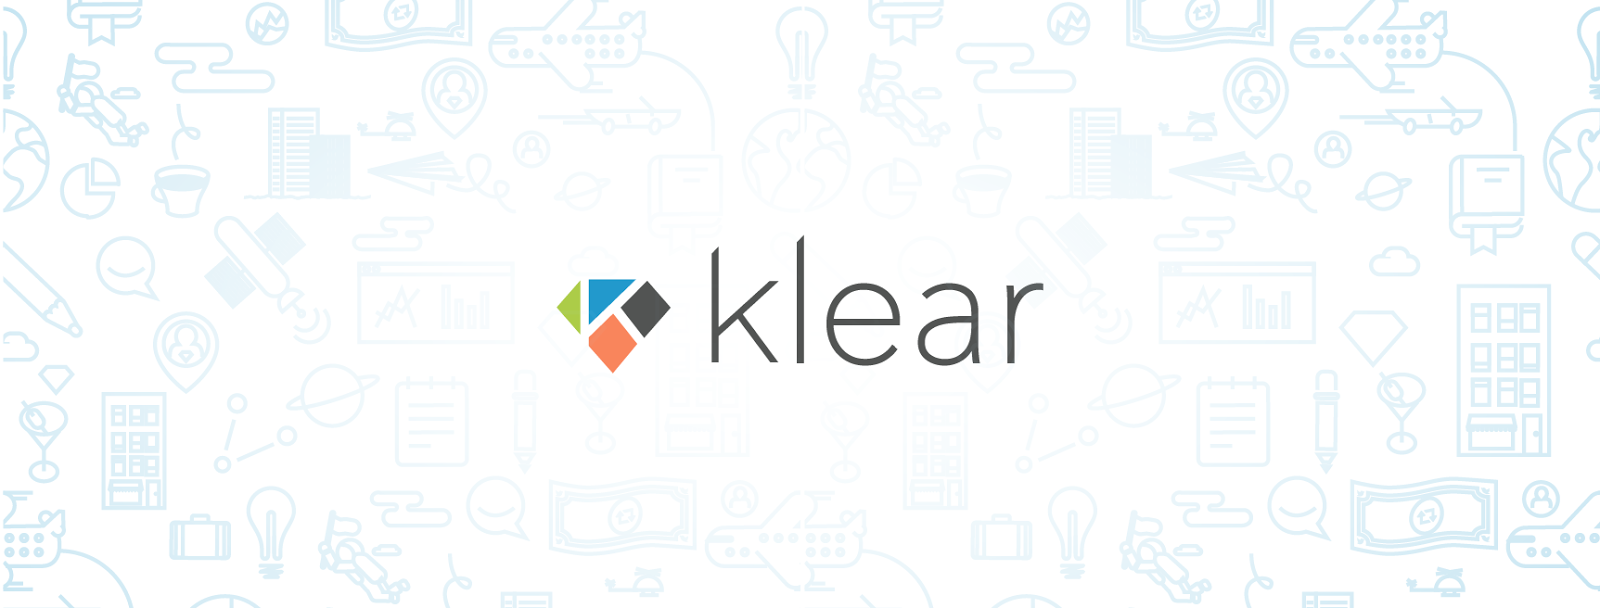 Top 1% by Klear.com